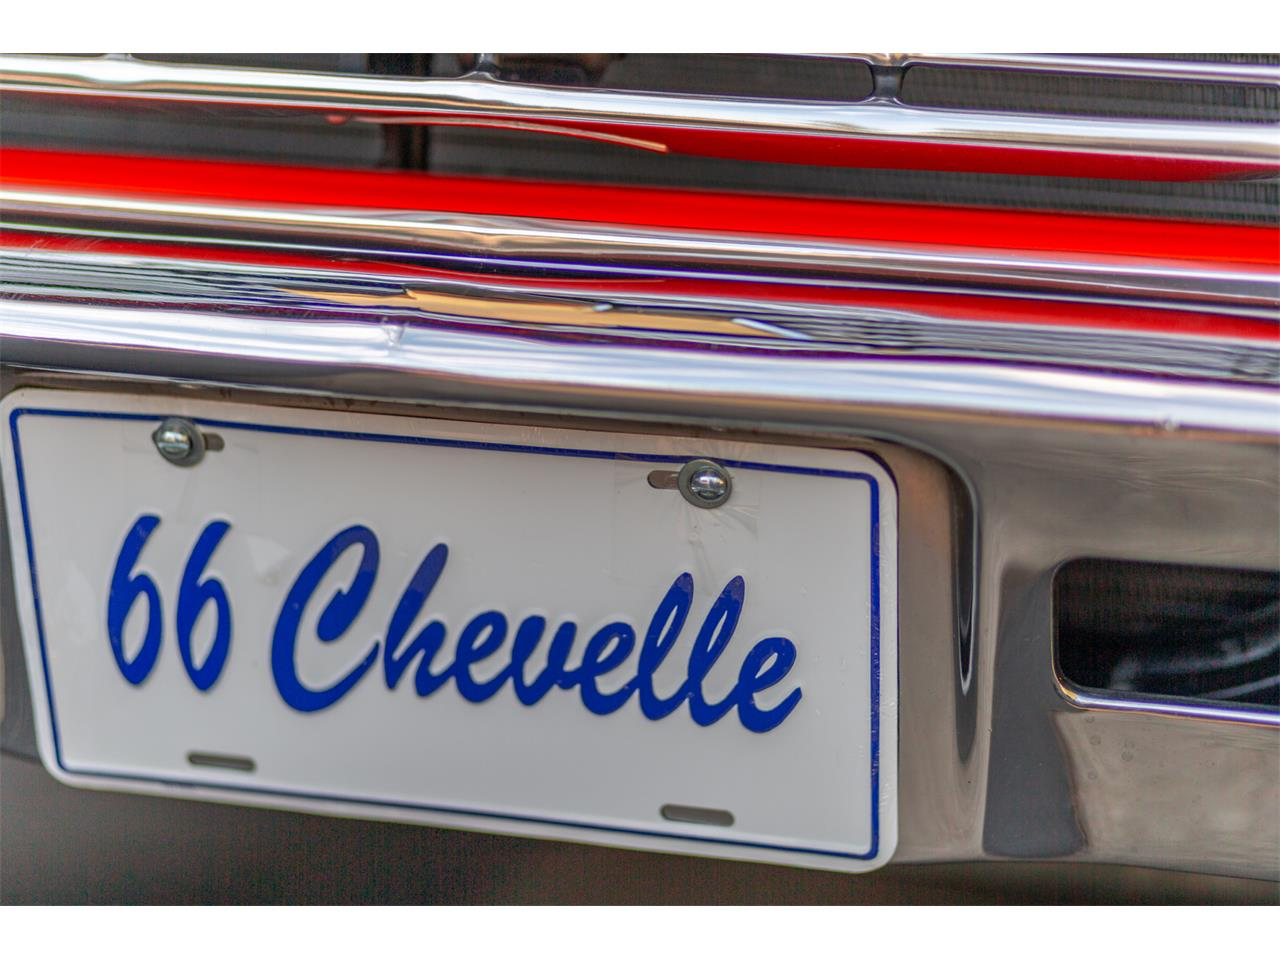 1966 Chevrolet Chevelle (CC-1272173) for sale in Anderson, California